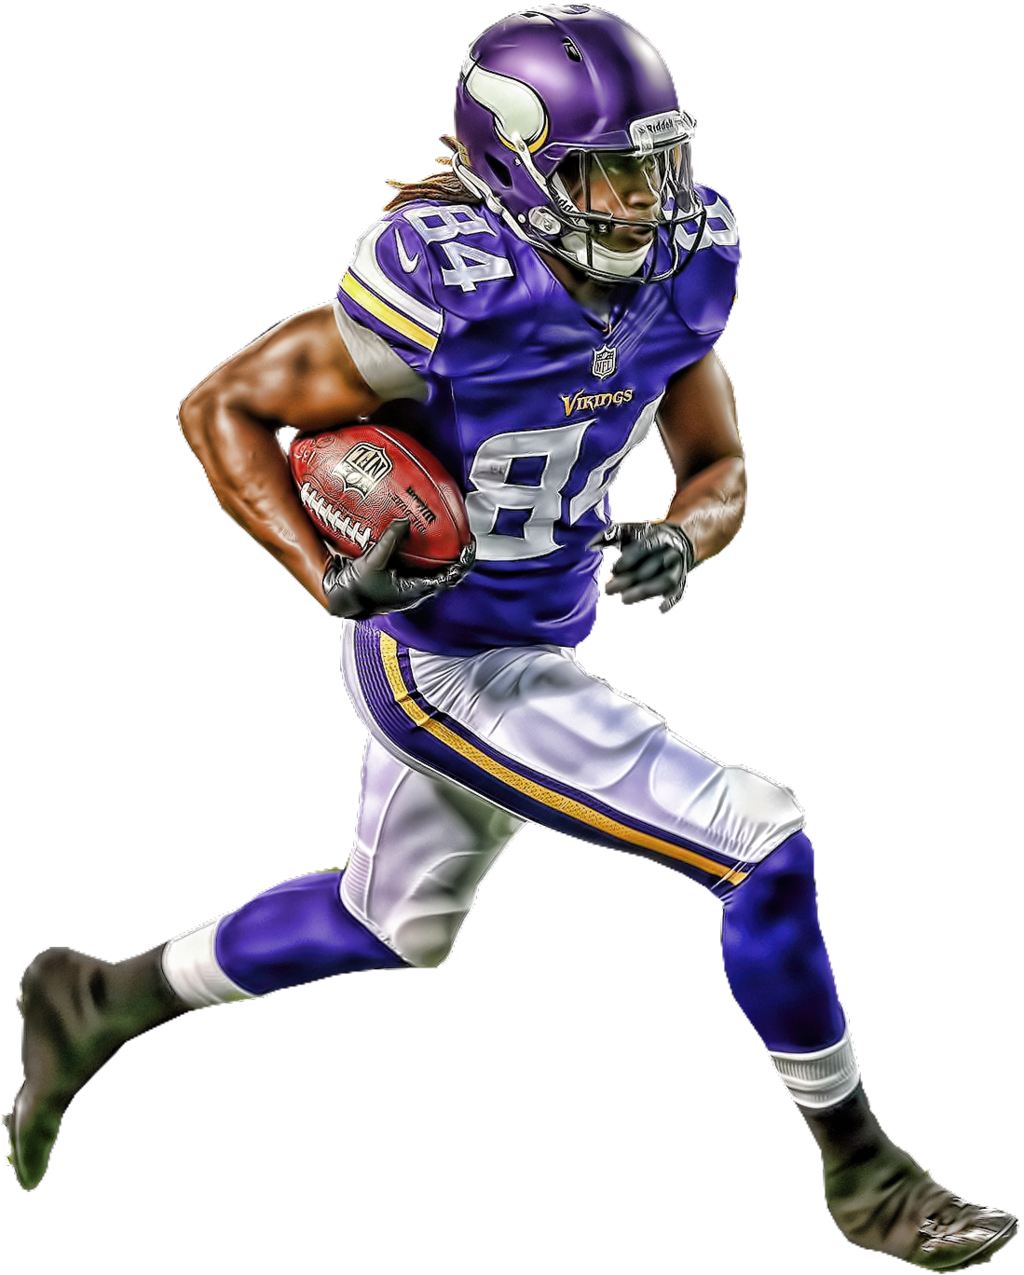 American Football Player Png Image American Football Players American Football Football Players